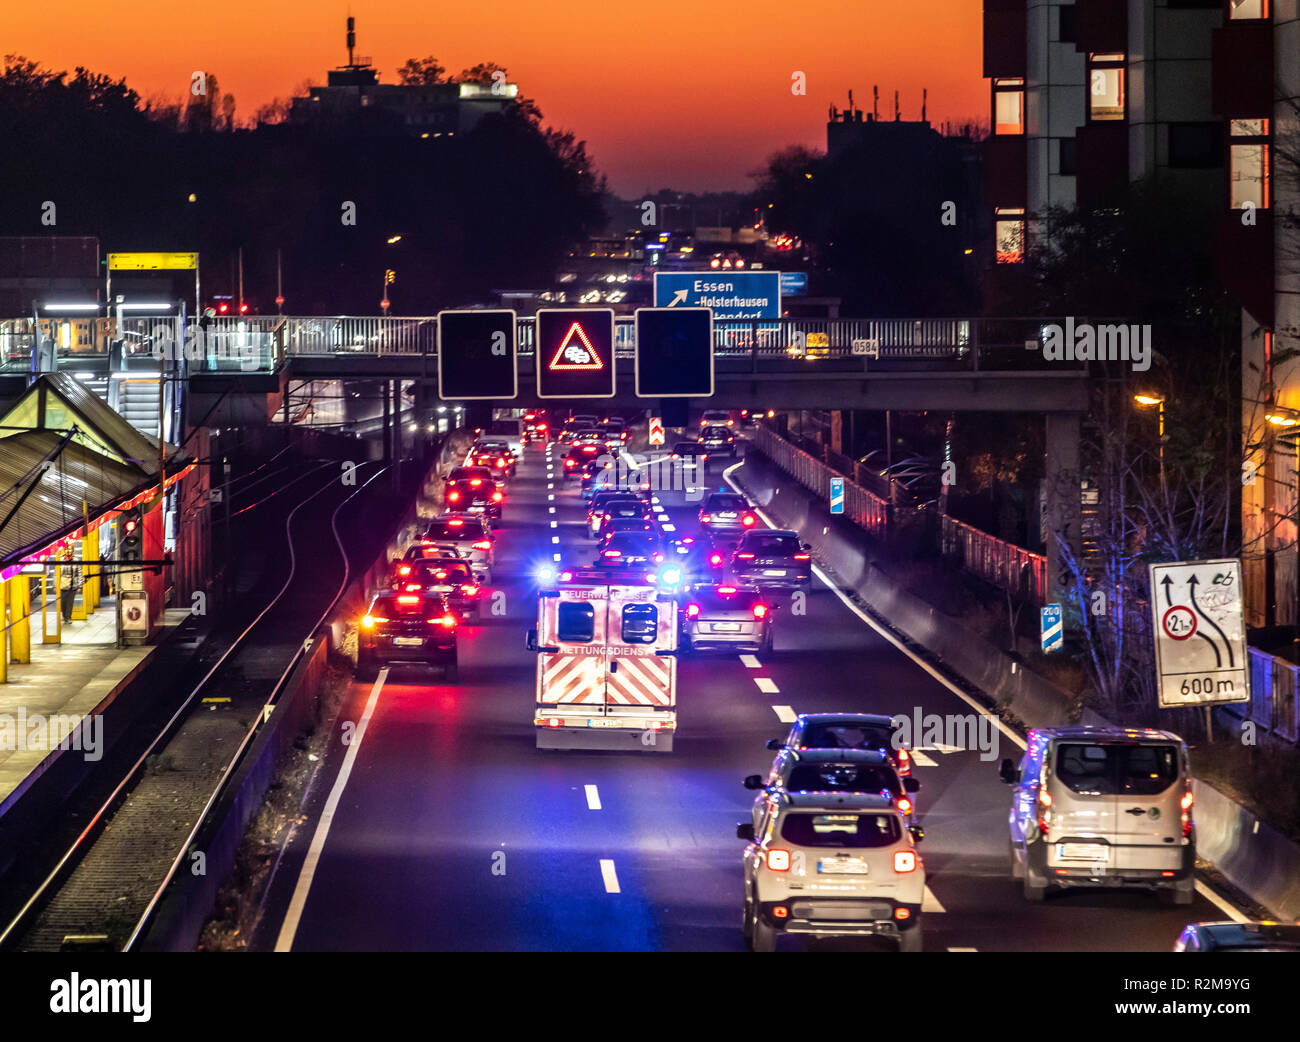 Ambulance drives with blue lights and sirens, on a highway, A40 in Essen, to an emergency mission, rescue lane, Germany - Stock Image